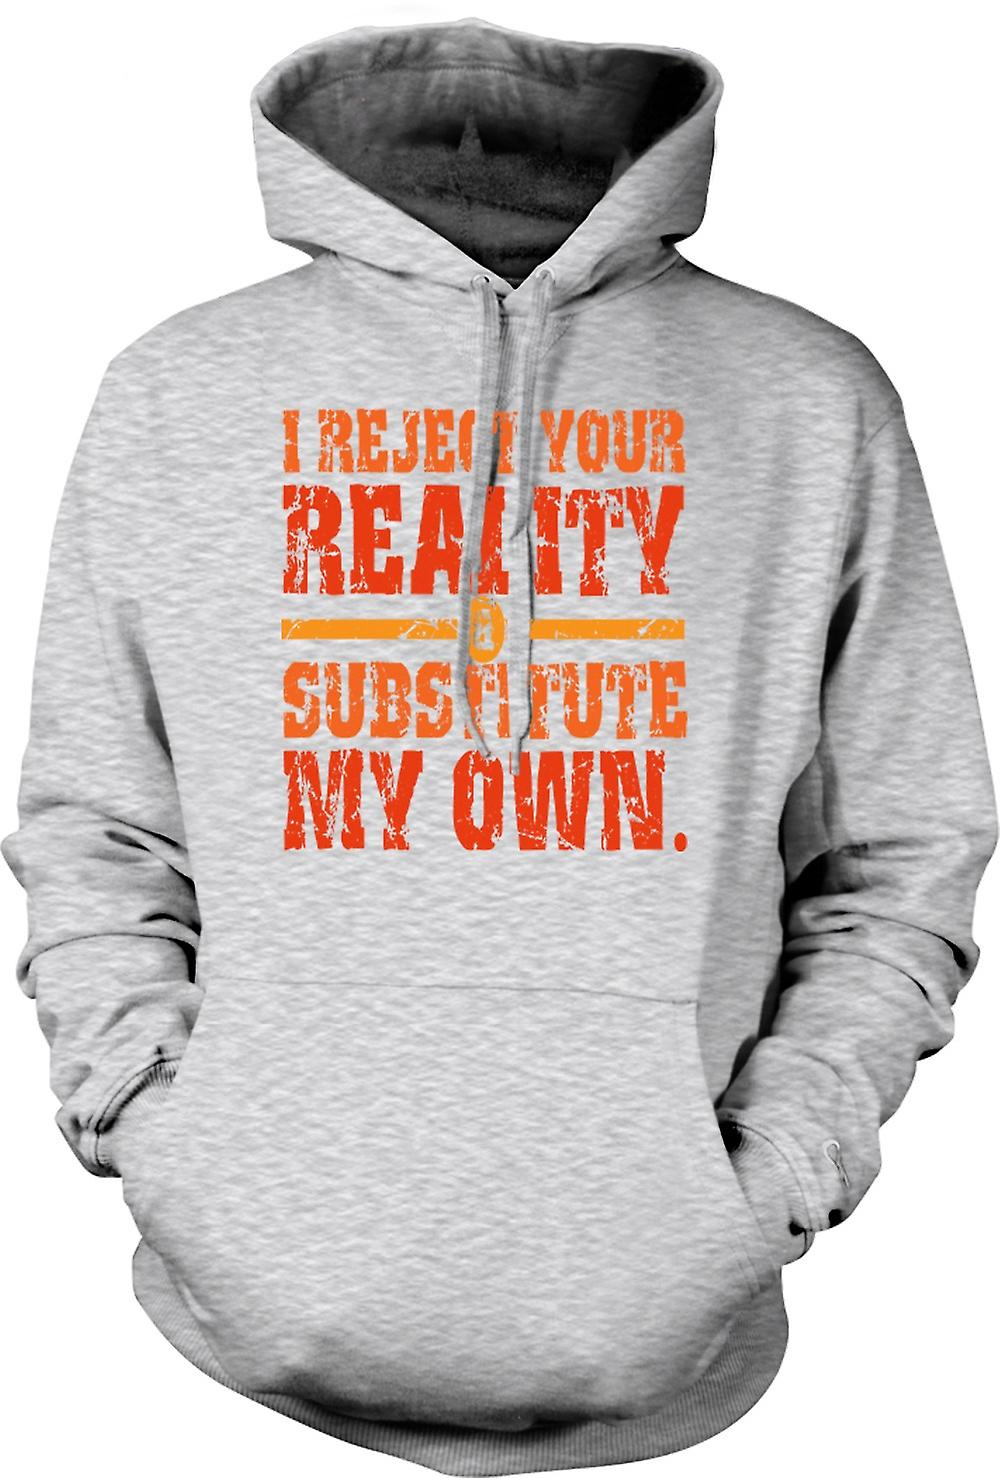 Mens Hoodie - I Reject Your Reality - Mythbusters